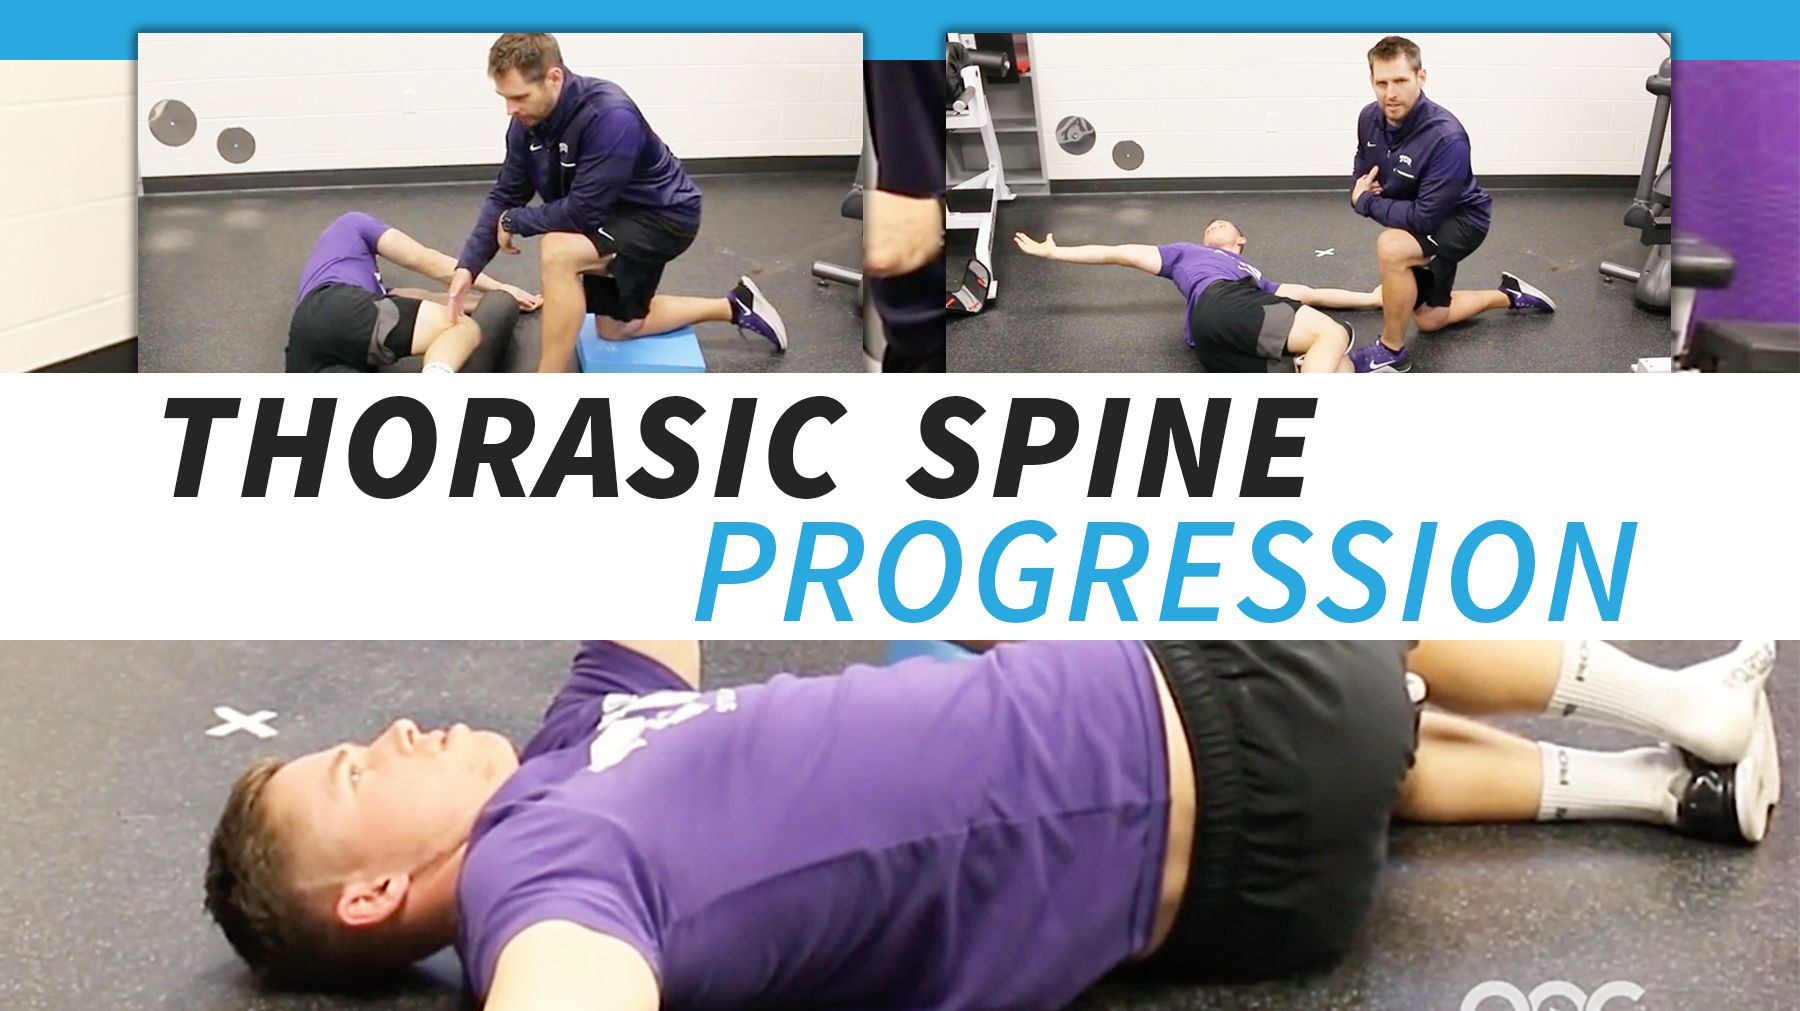 Thoracic Spine Progression For Overhead Athletes The Art Of Coaching Volleyball Strength And Conditioning Coach Circuit Workout Coaching Volleyball